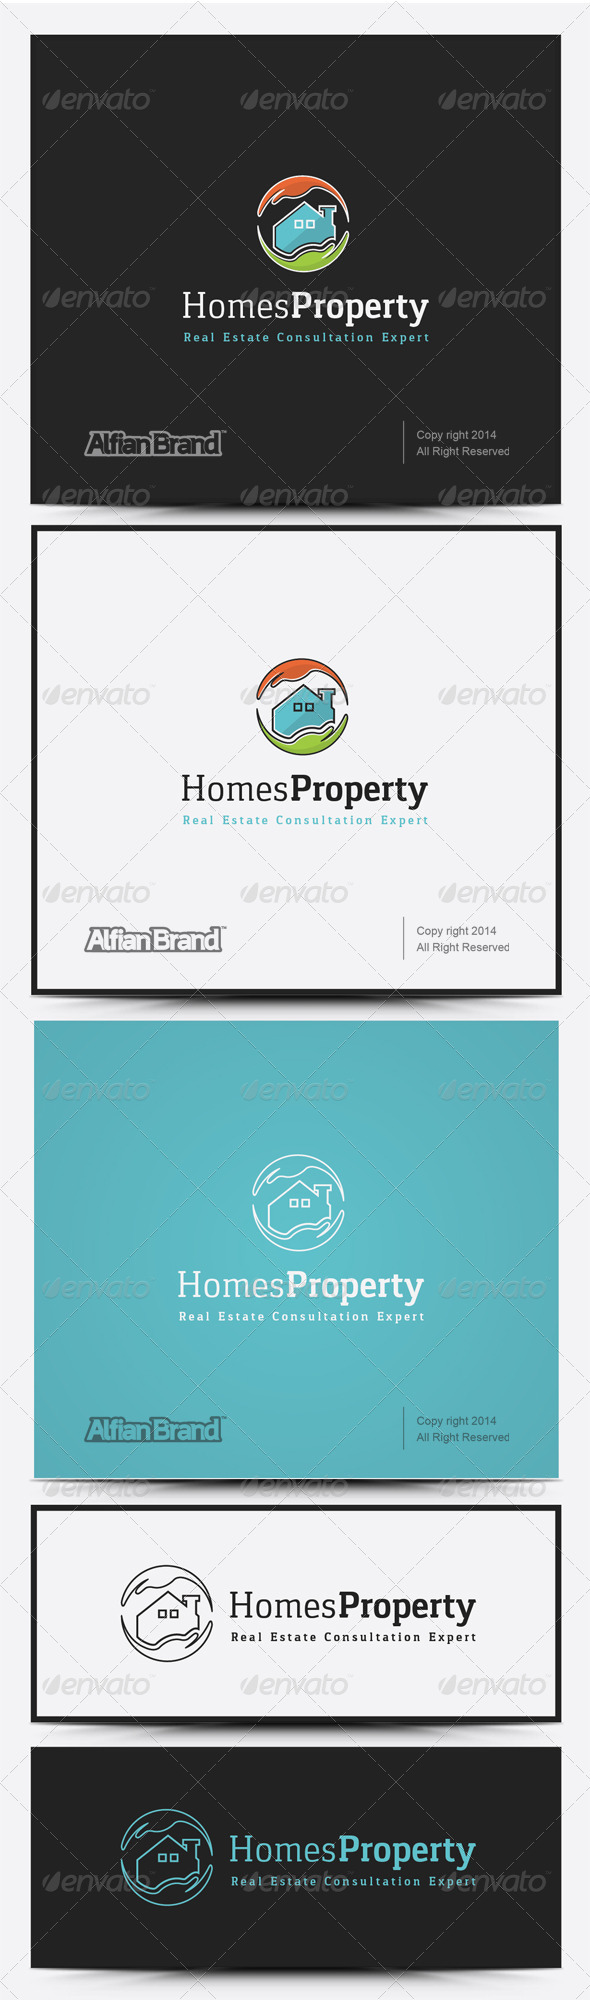 GraphicRiver Homes Property Logo 8258585